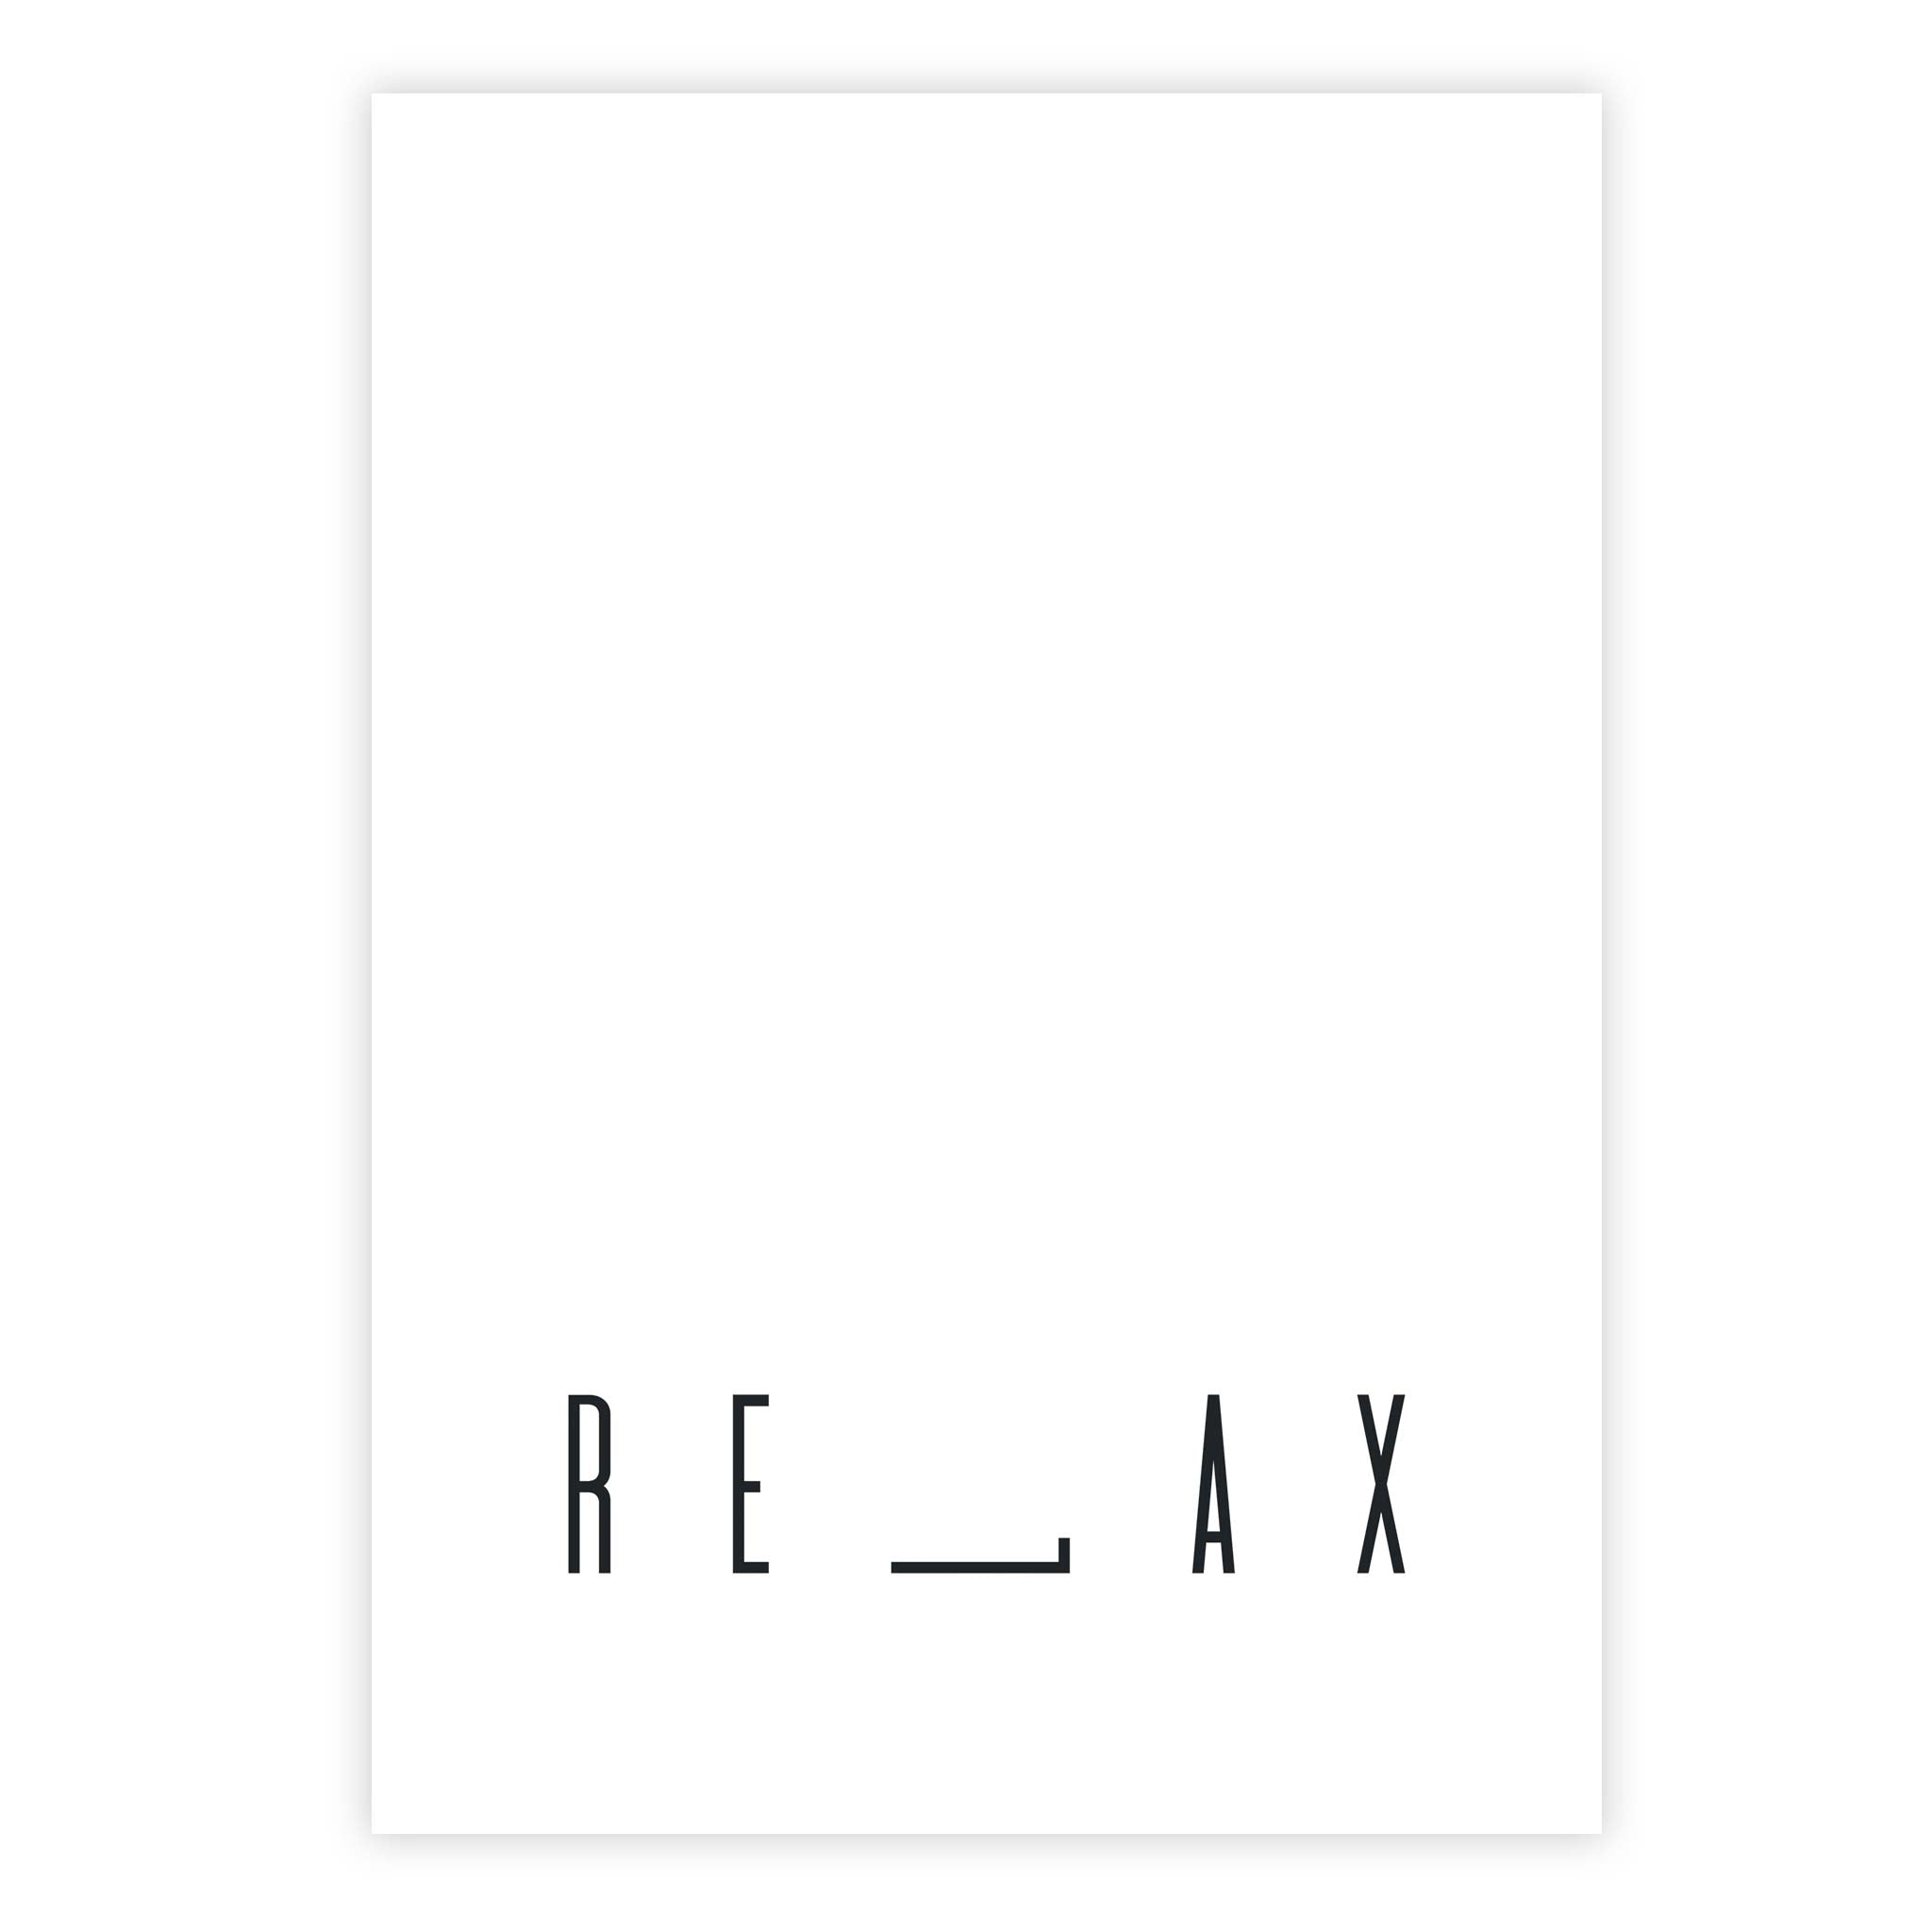 Relax (l on its side)